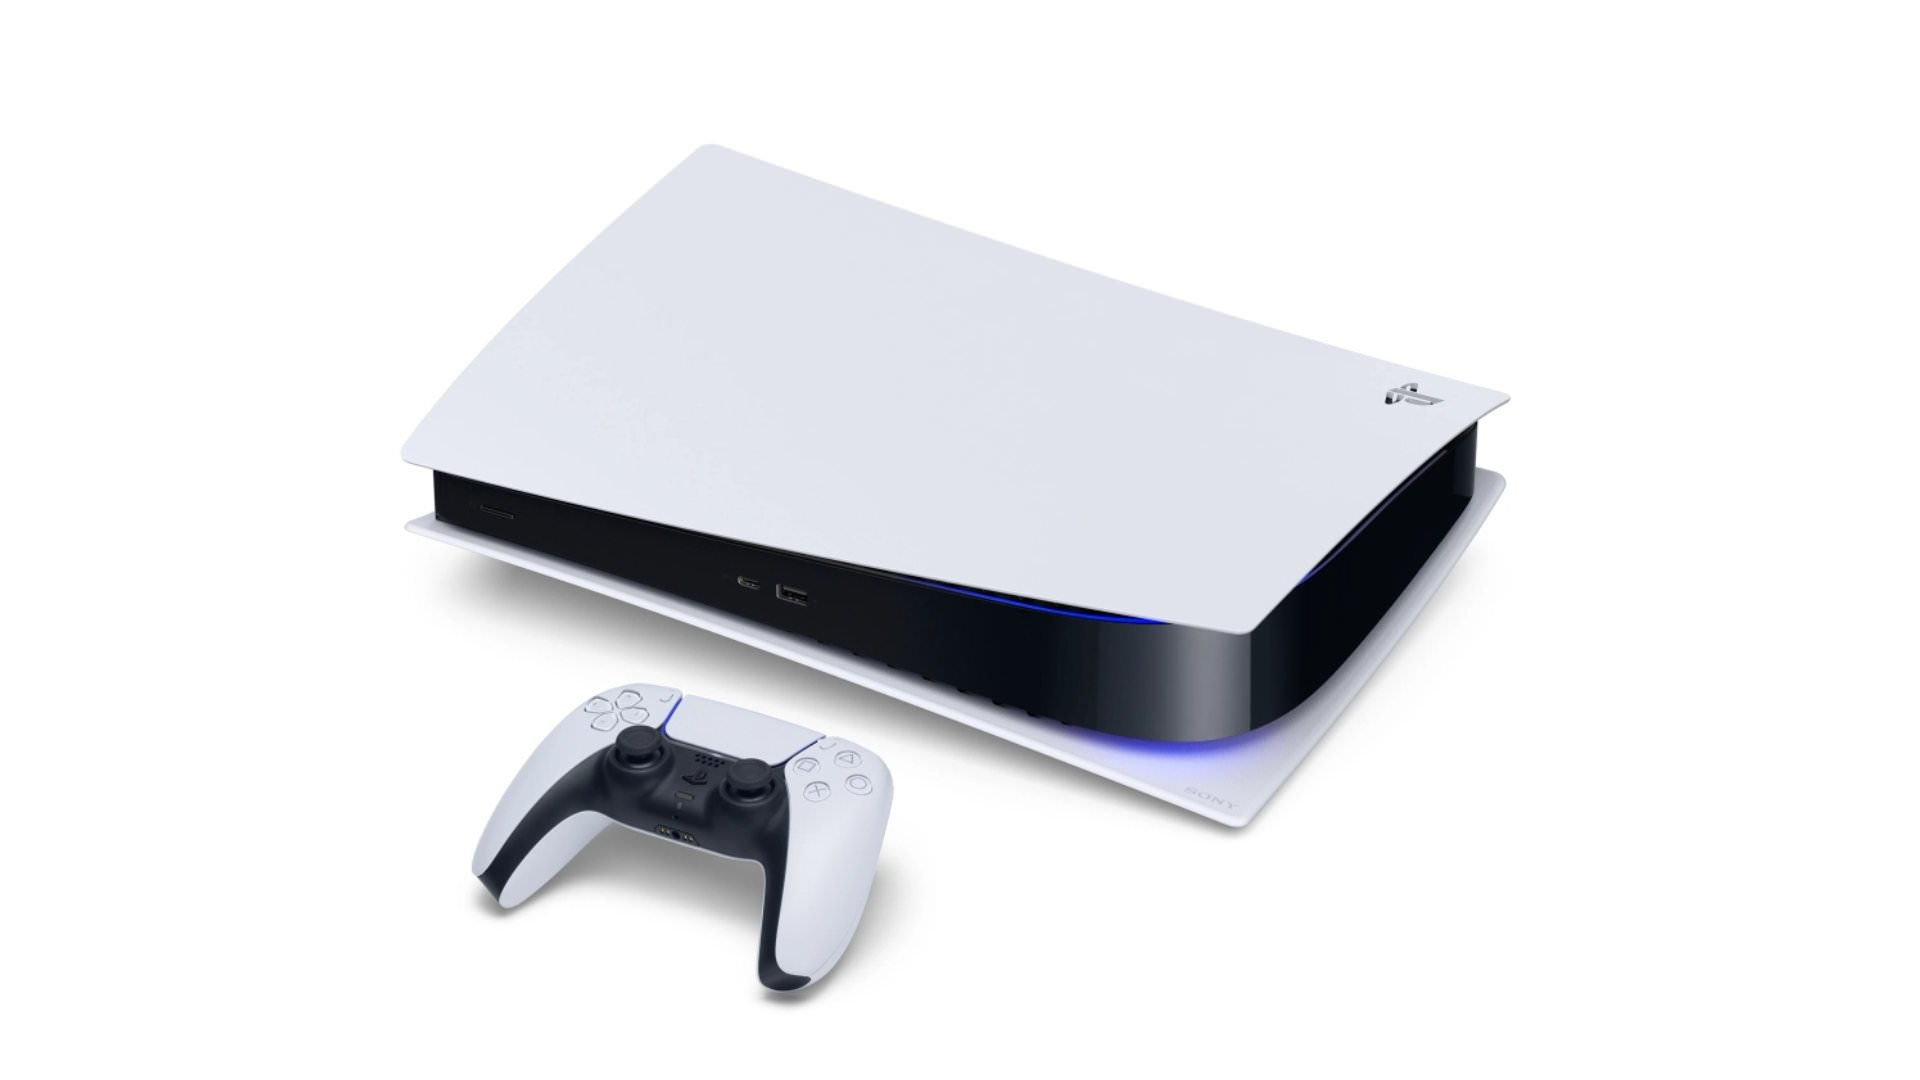 la nueva PlayStation 5 con mando